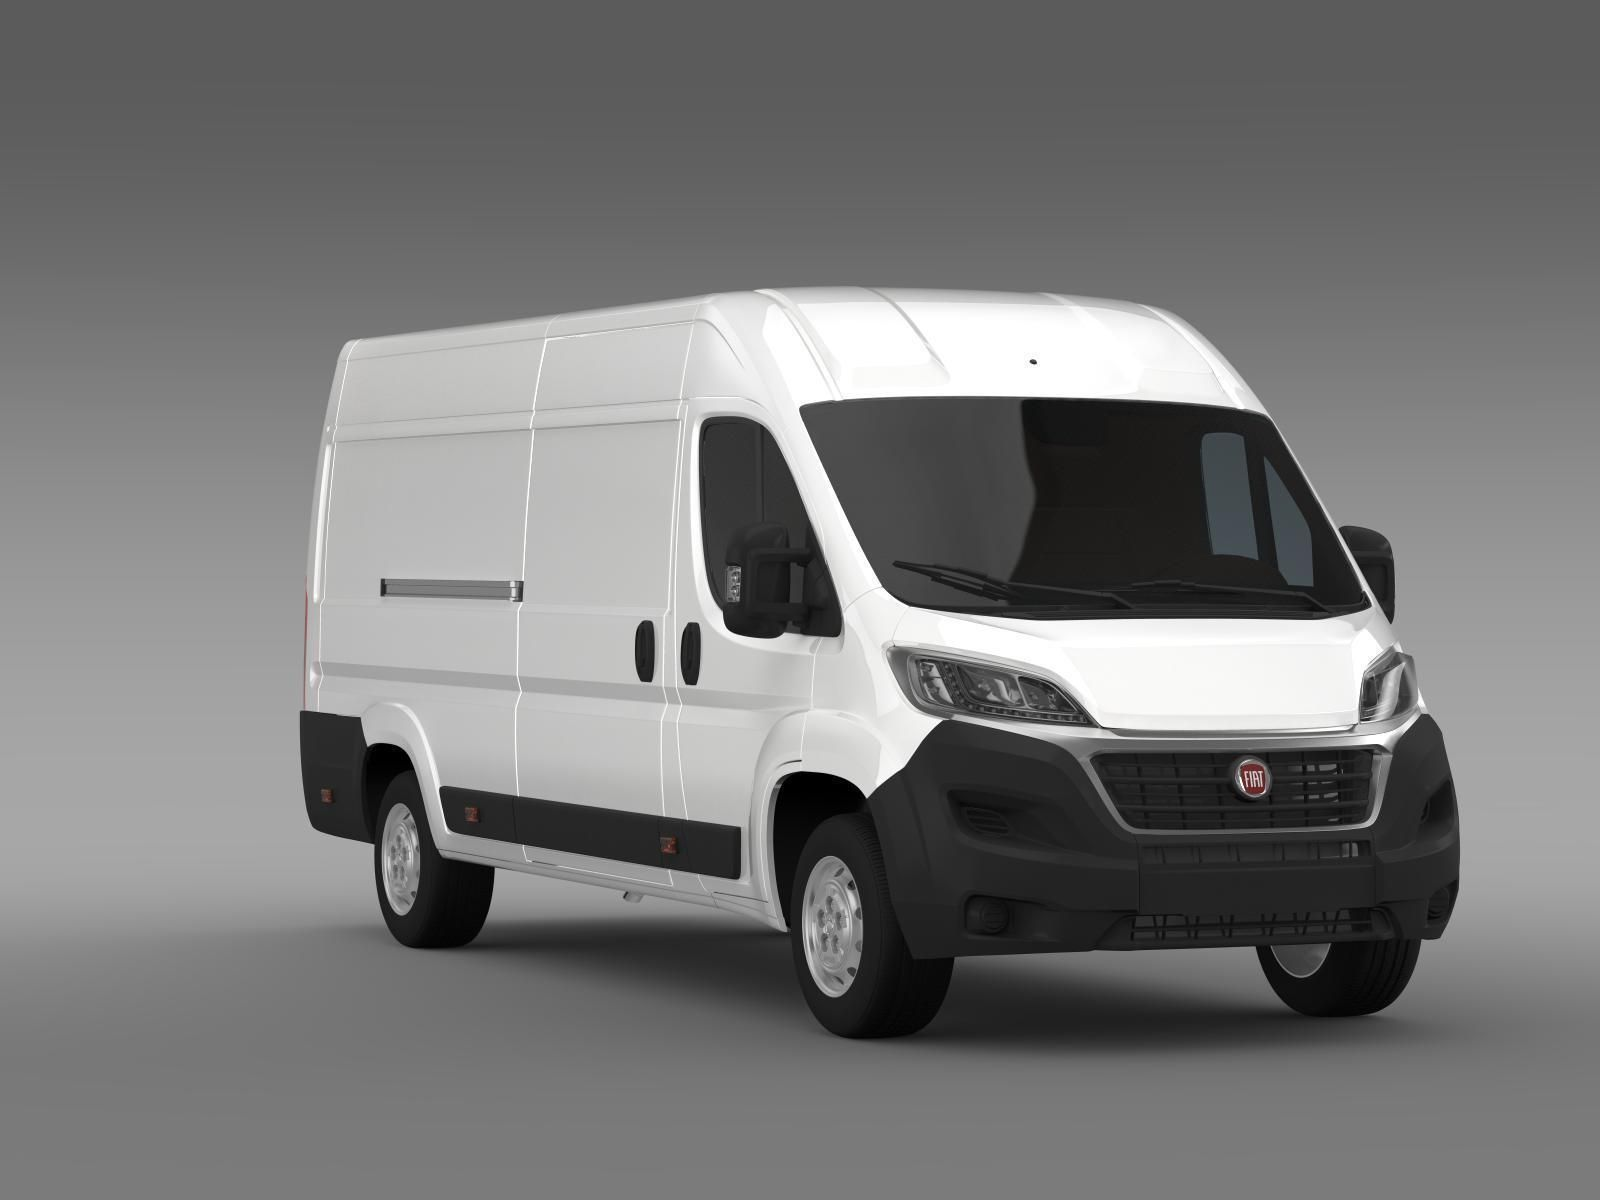 fiat ducato van l4h2 2015 3d model max obj 3ds fbx c4d lwo lw lws. Black Bedroom Furniture Sets. Home Design Ideas